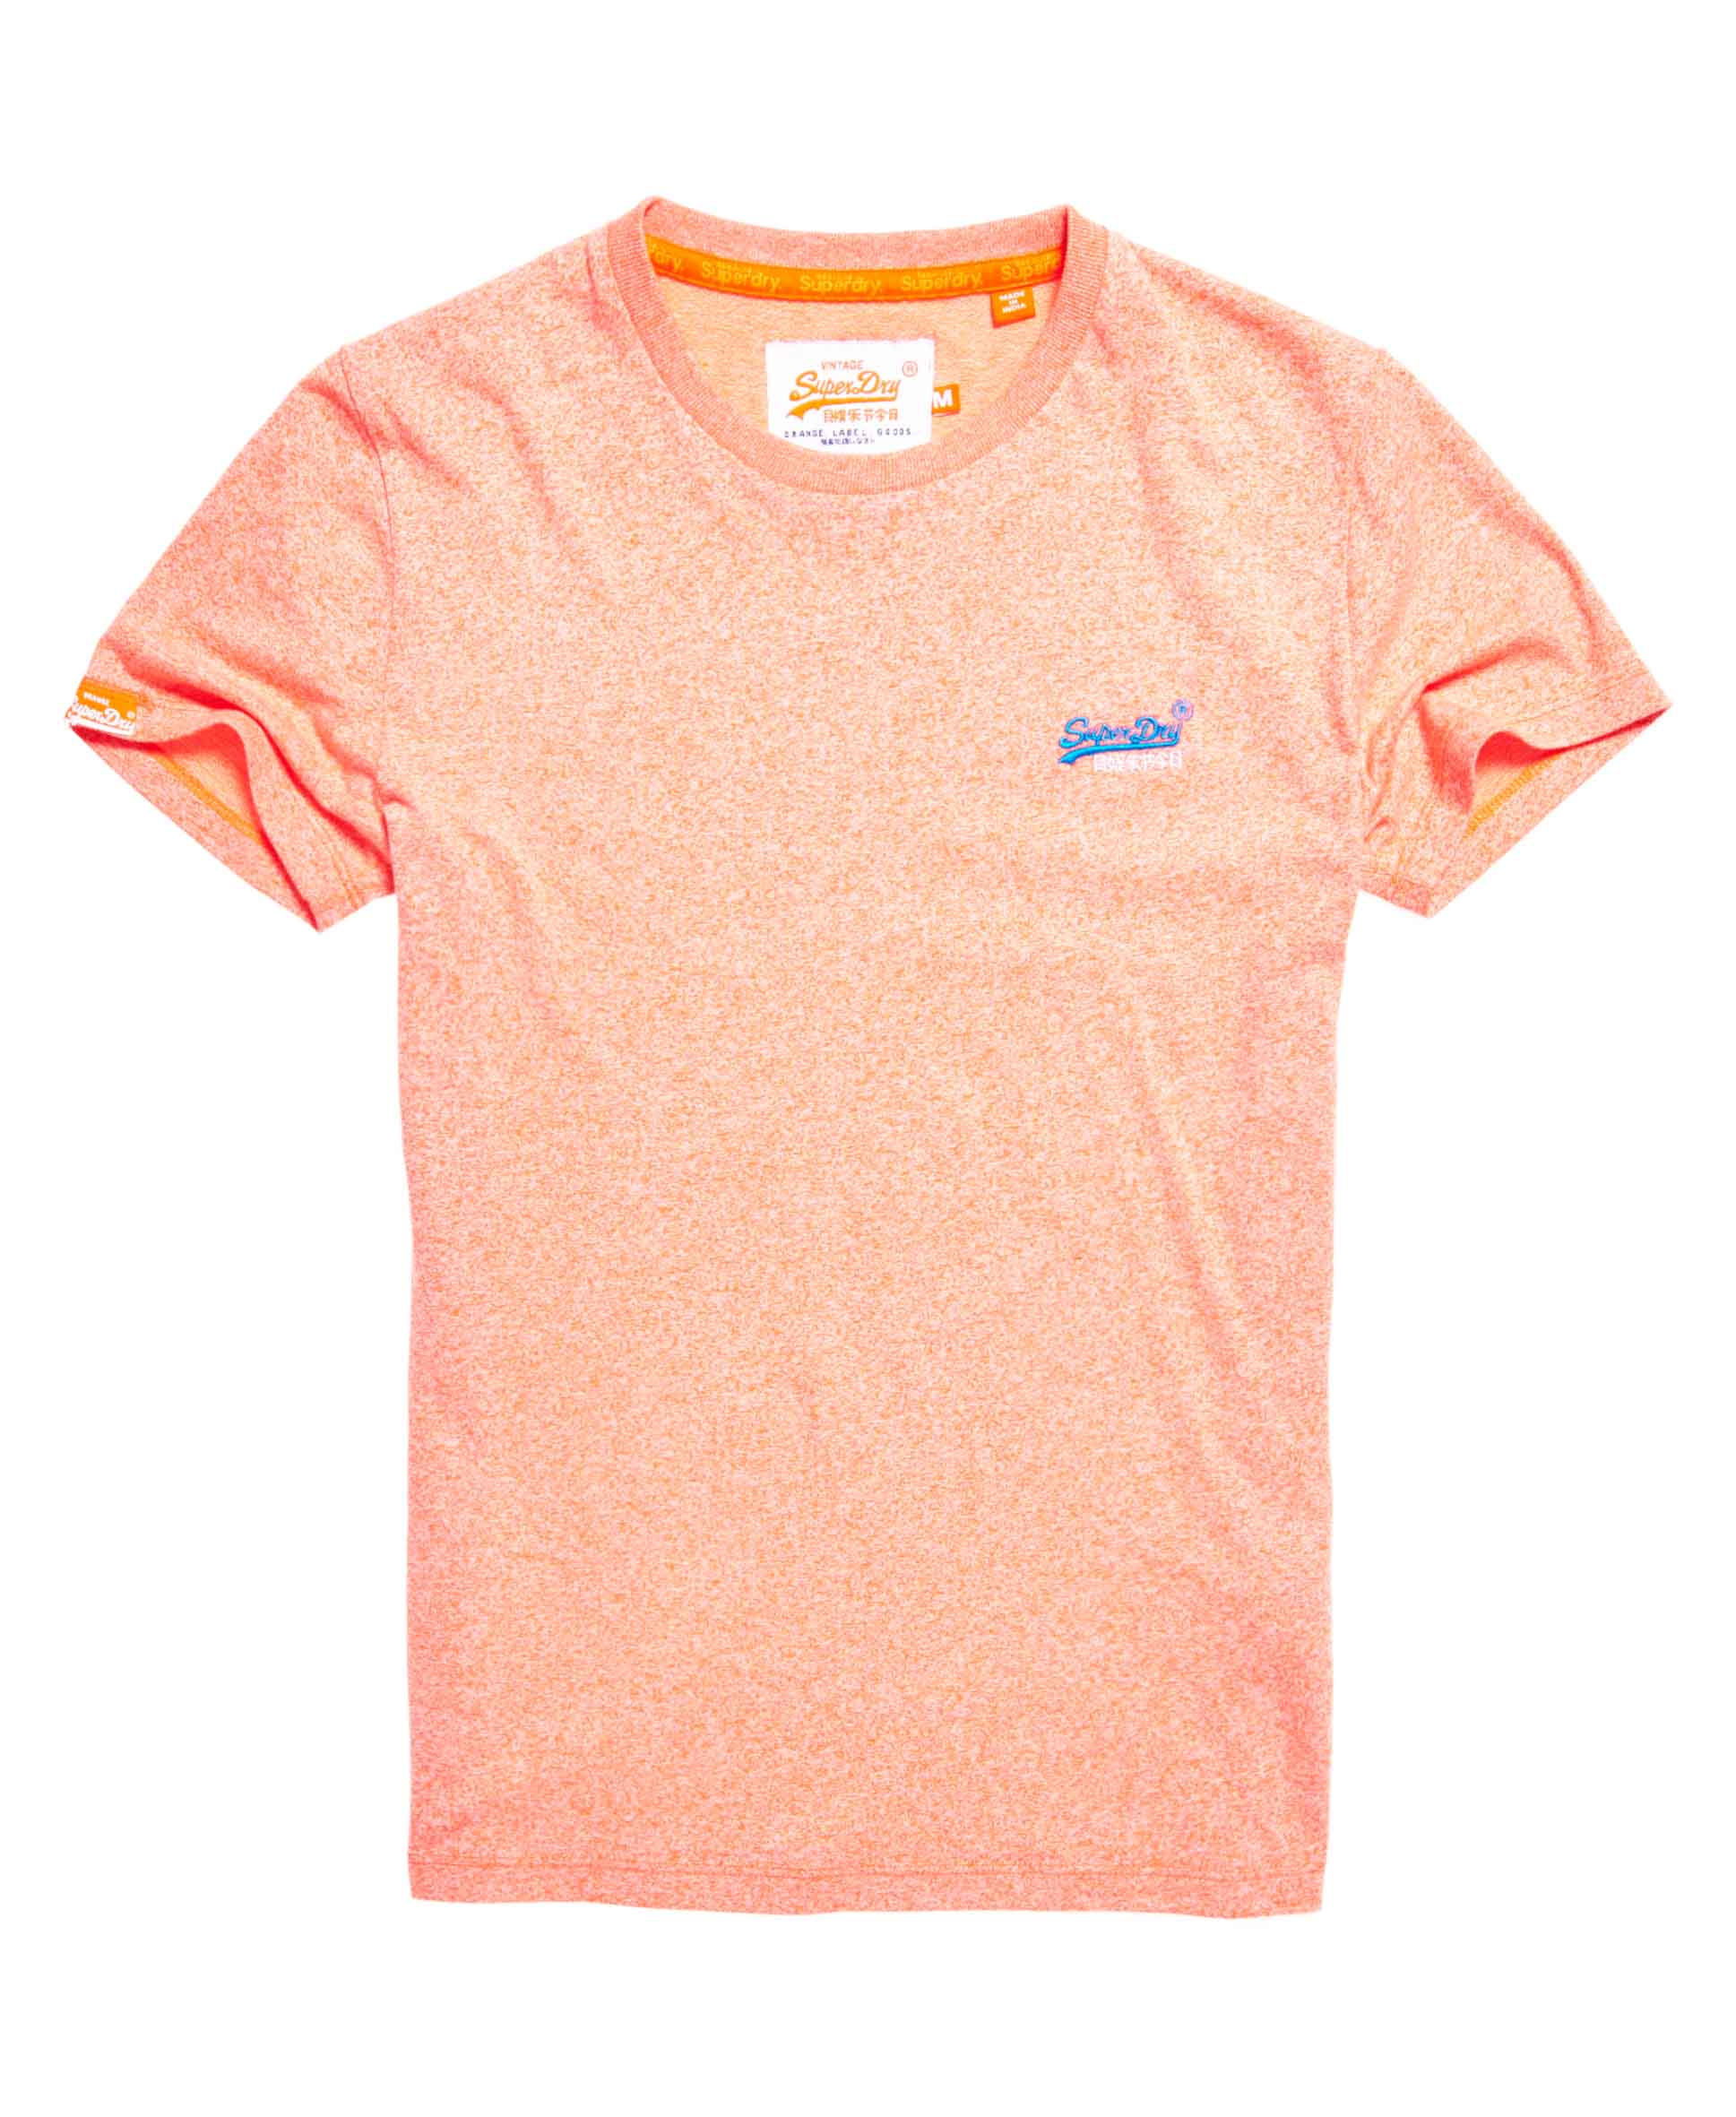 Superdry Orange Label Hyper Pop T-shirt - .jpg